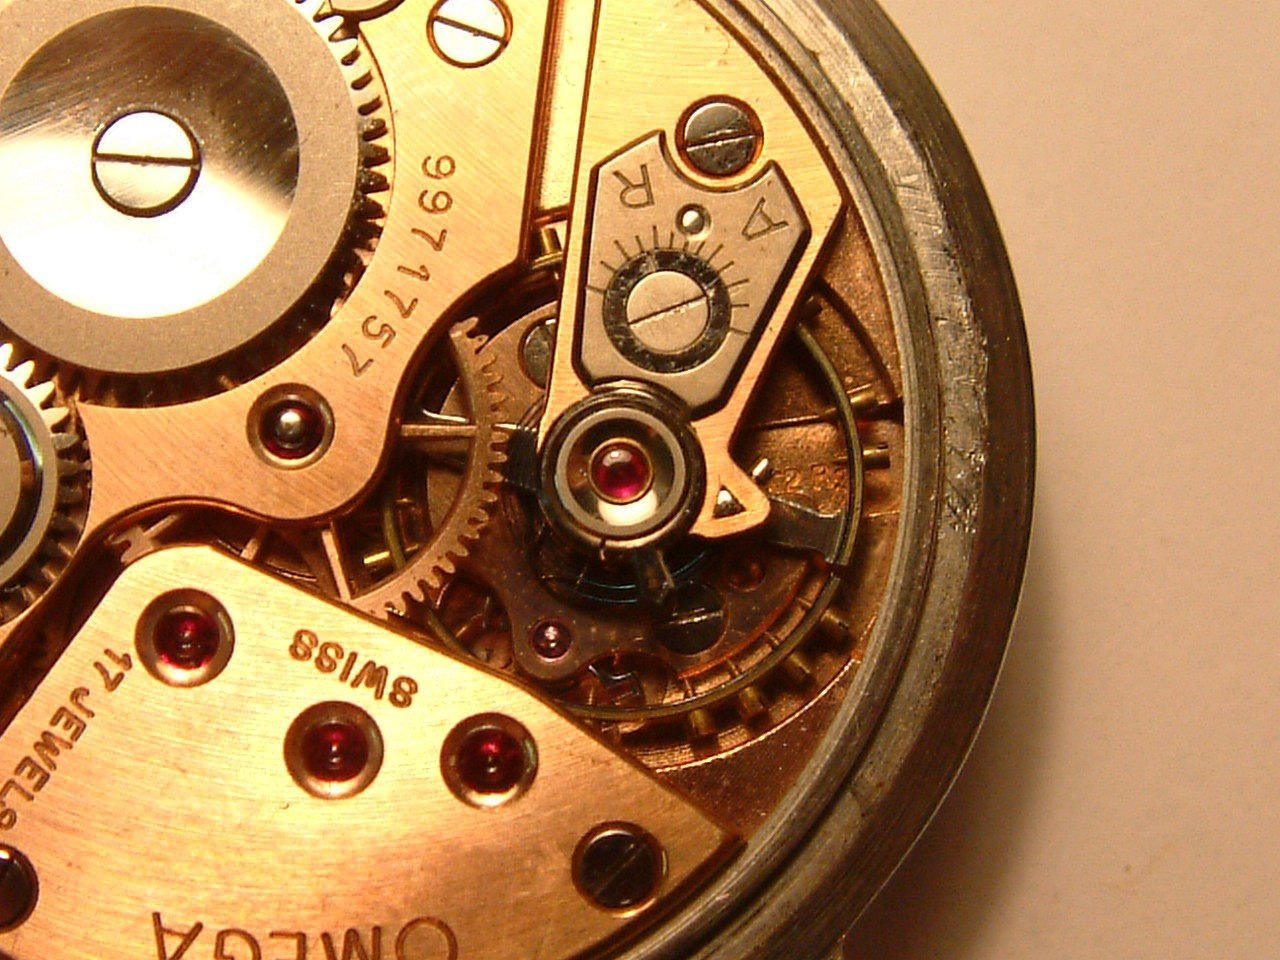 The inside of a watch